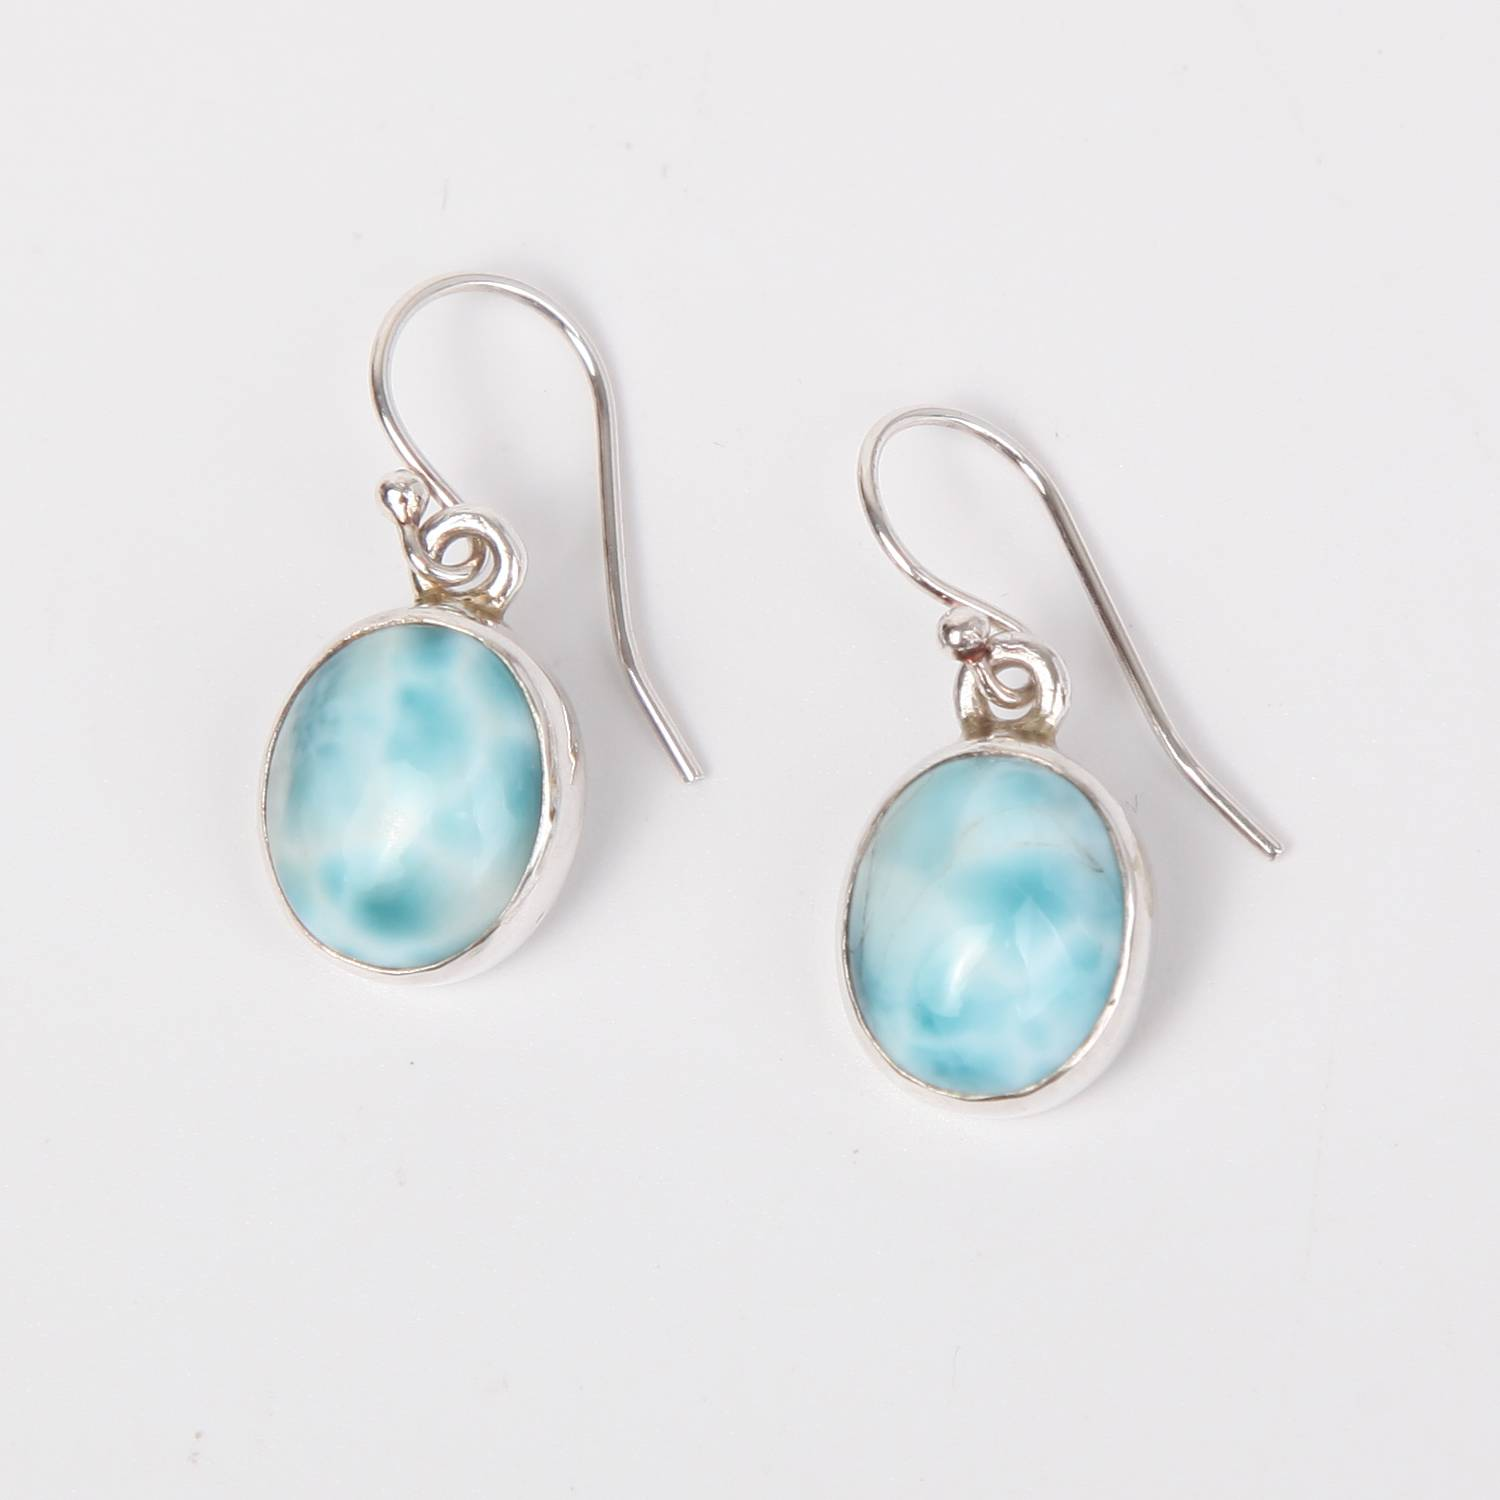 Sterling Silver Earrings with Larimar Stone